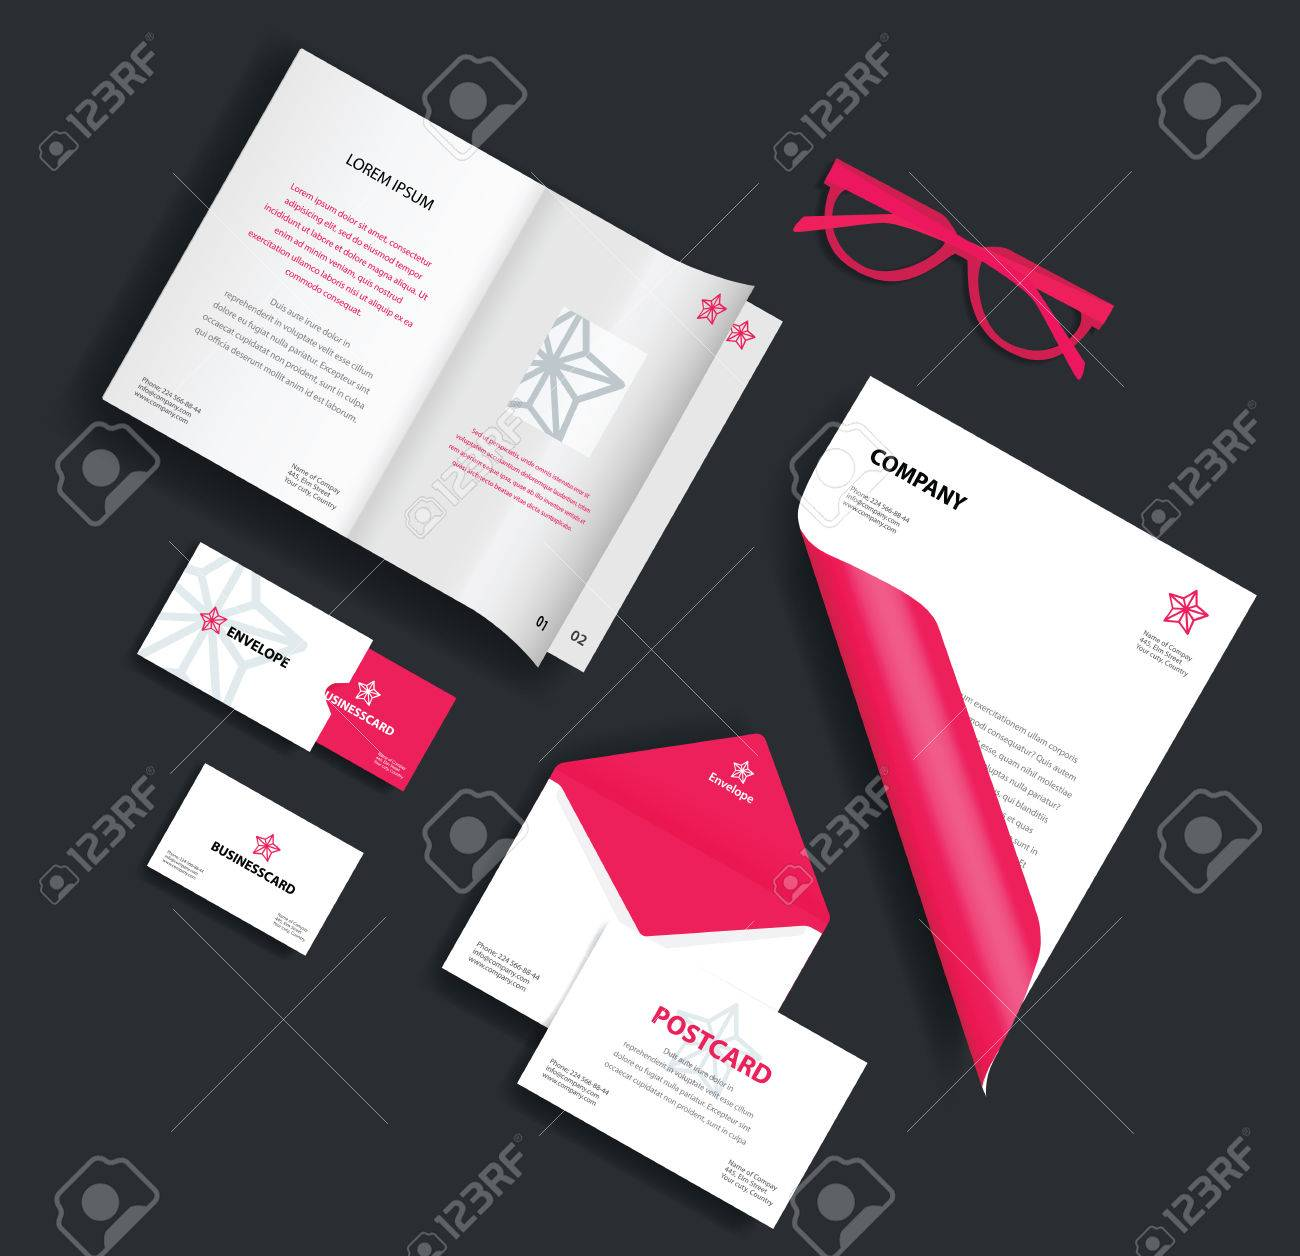 corporate identity template vector company style for brand book